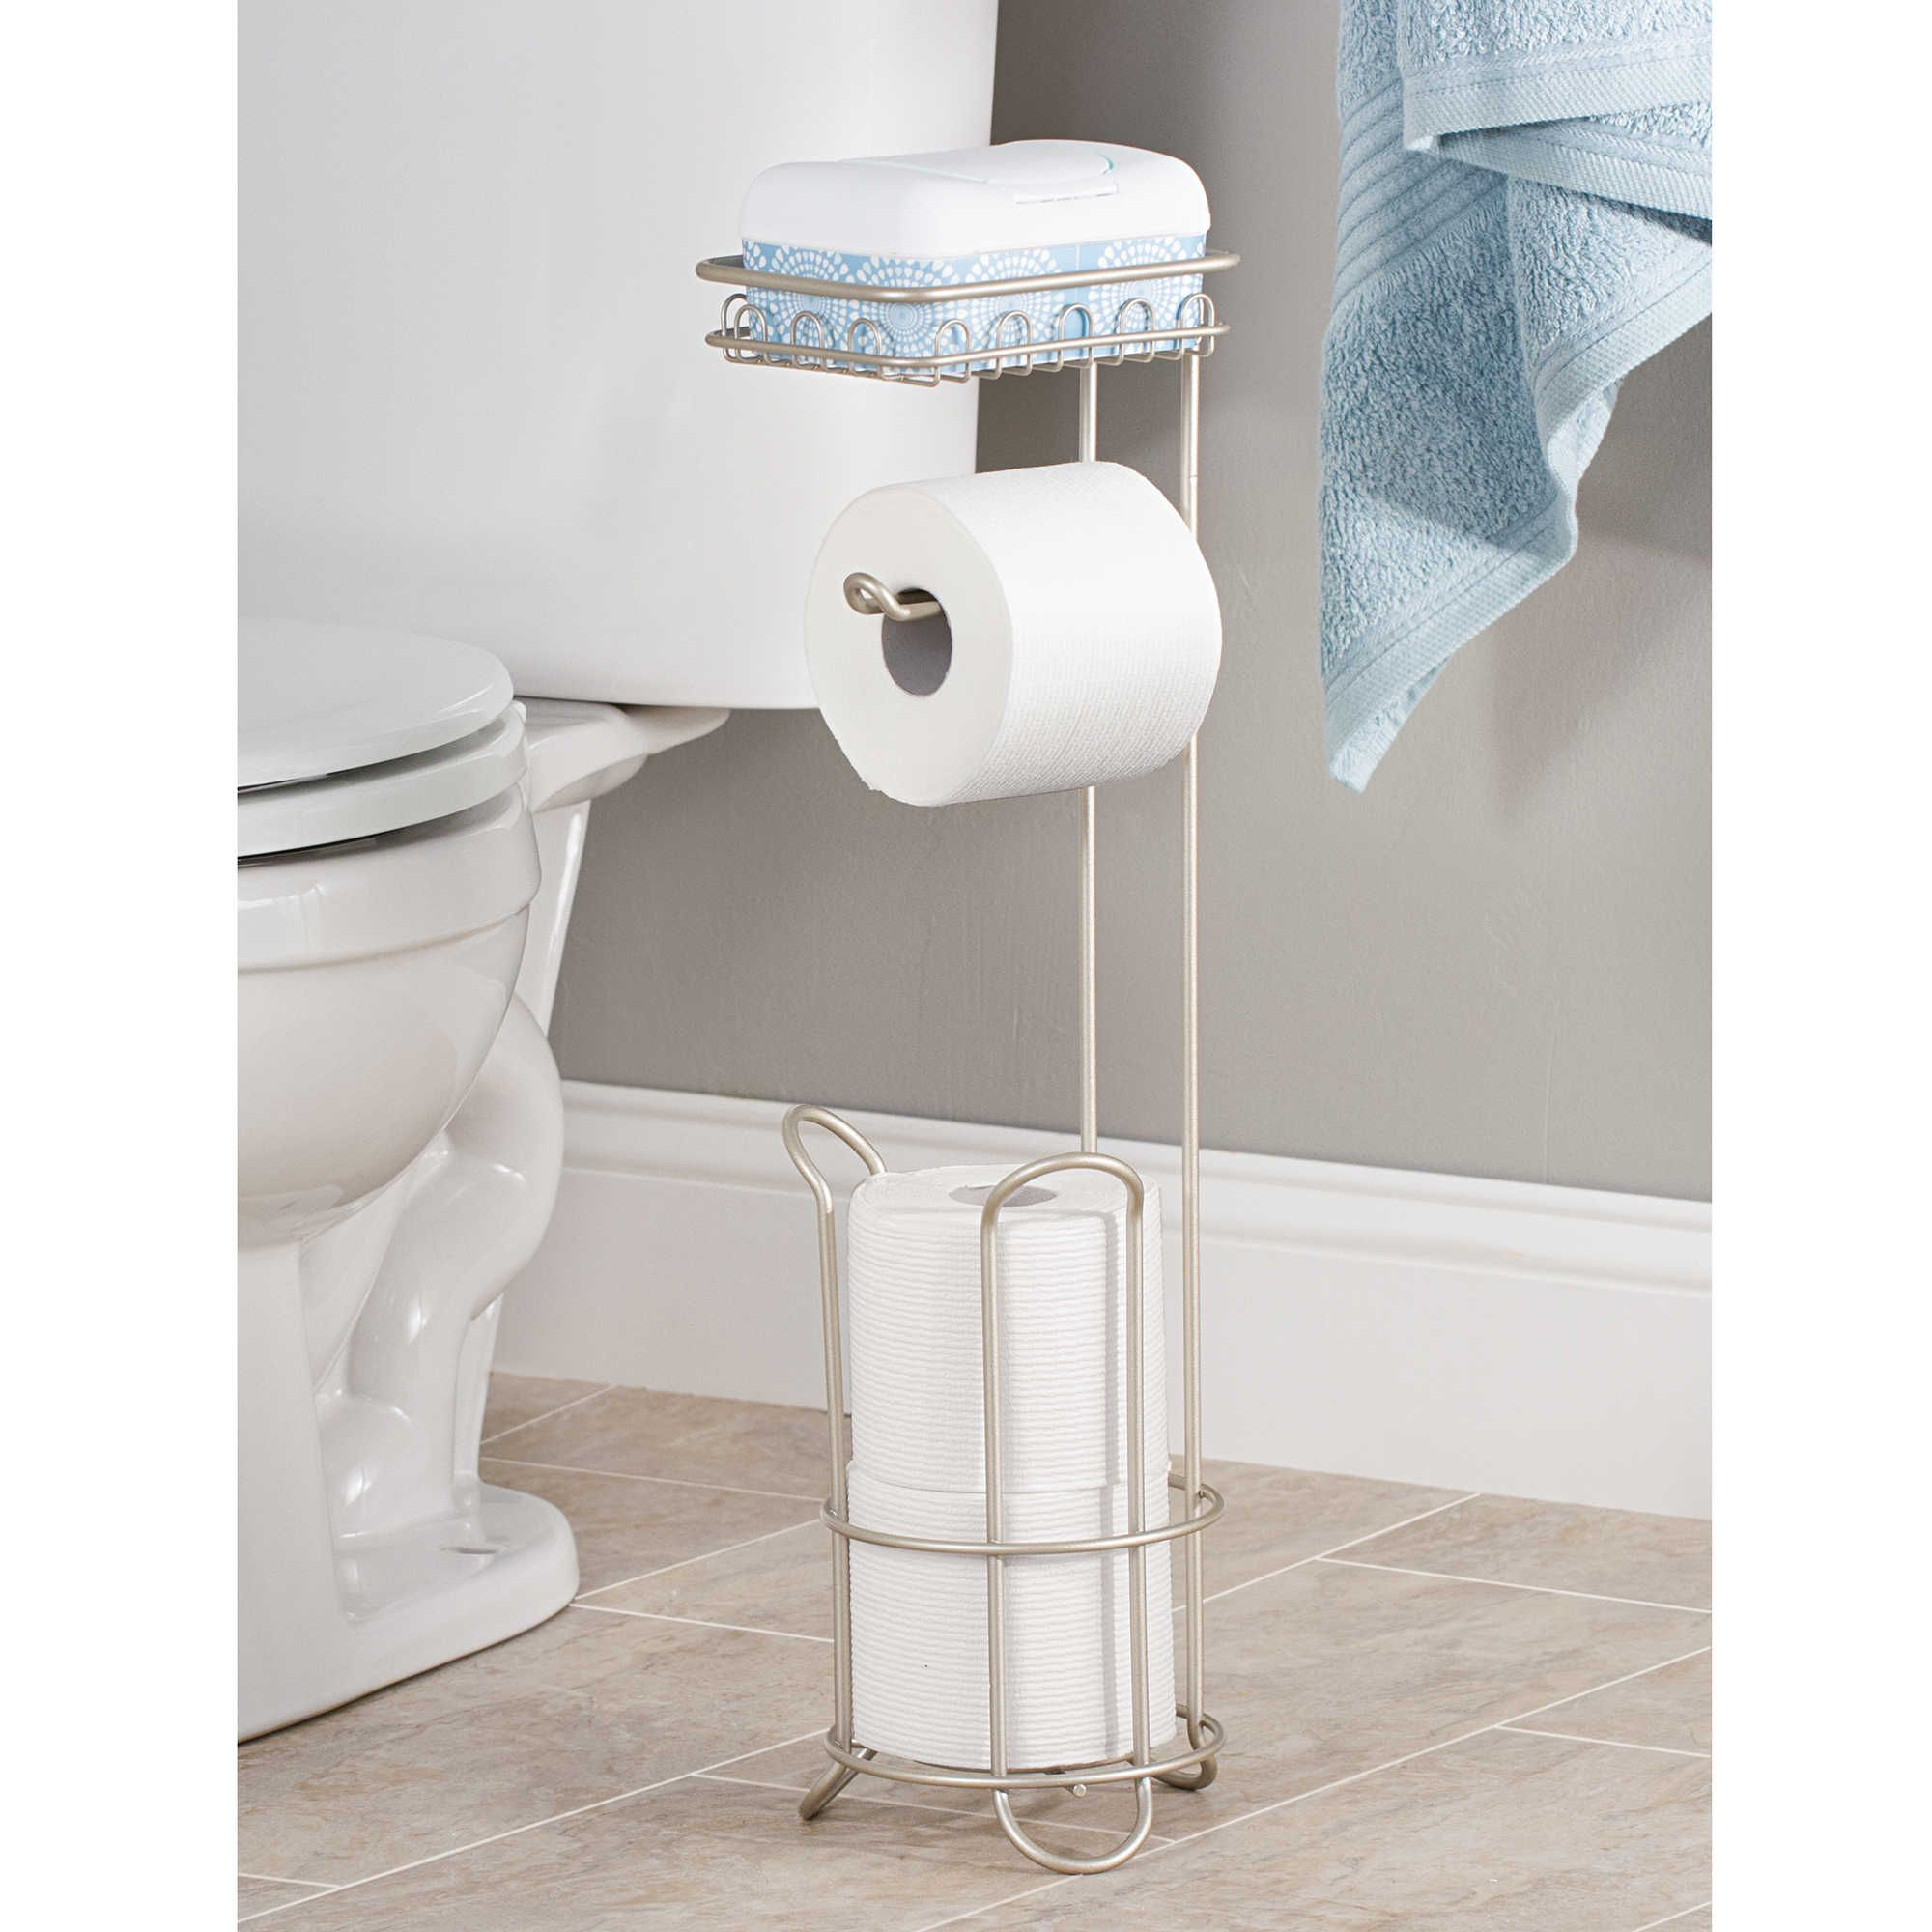 Space Saving Toilet Paper Holder I Love That This Has A Place For Your Wet Wipes Erin